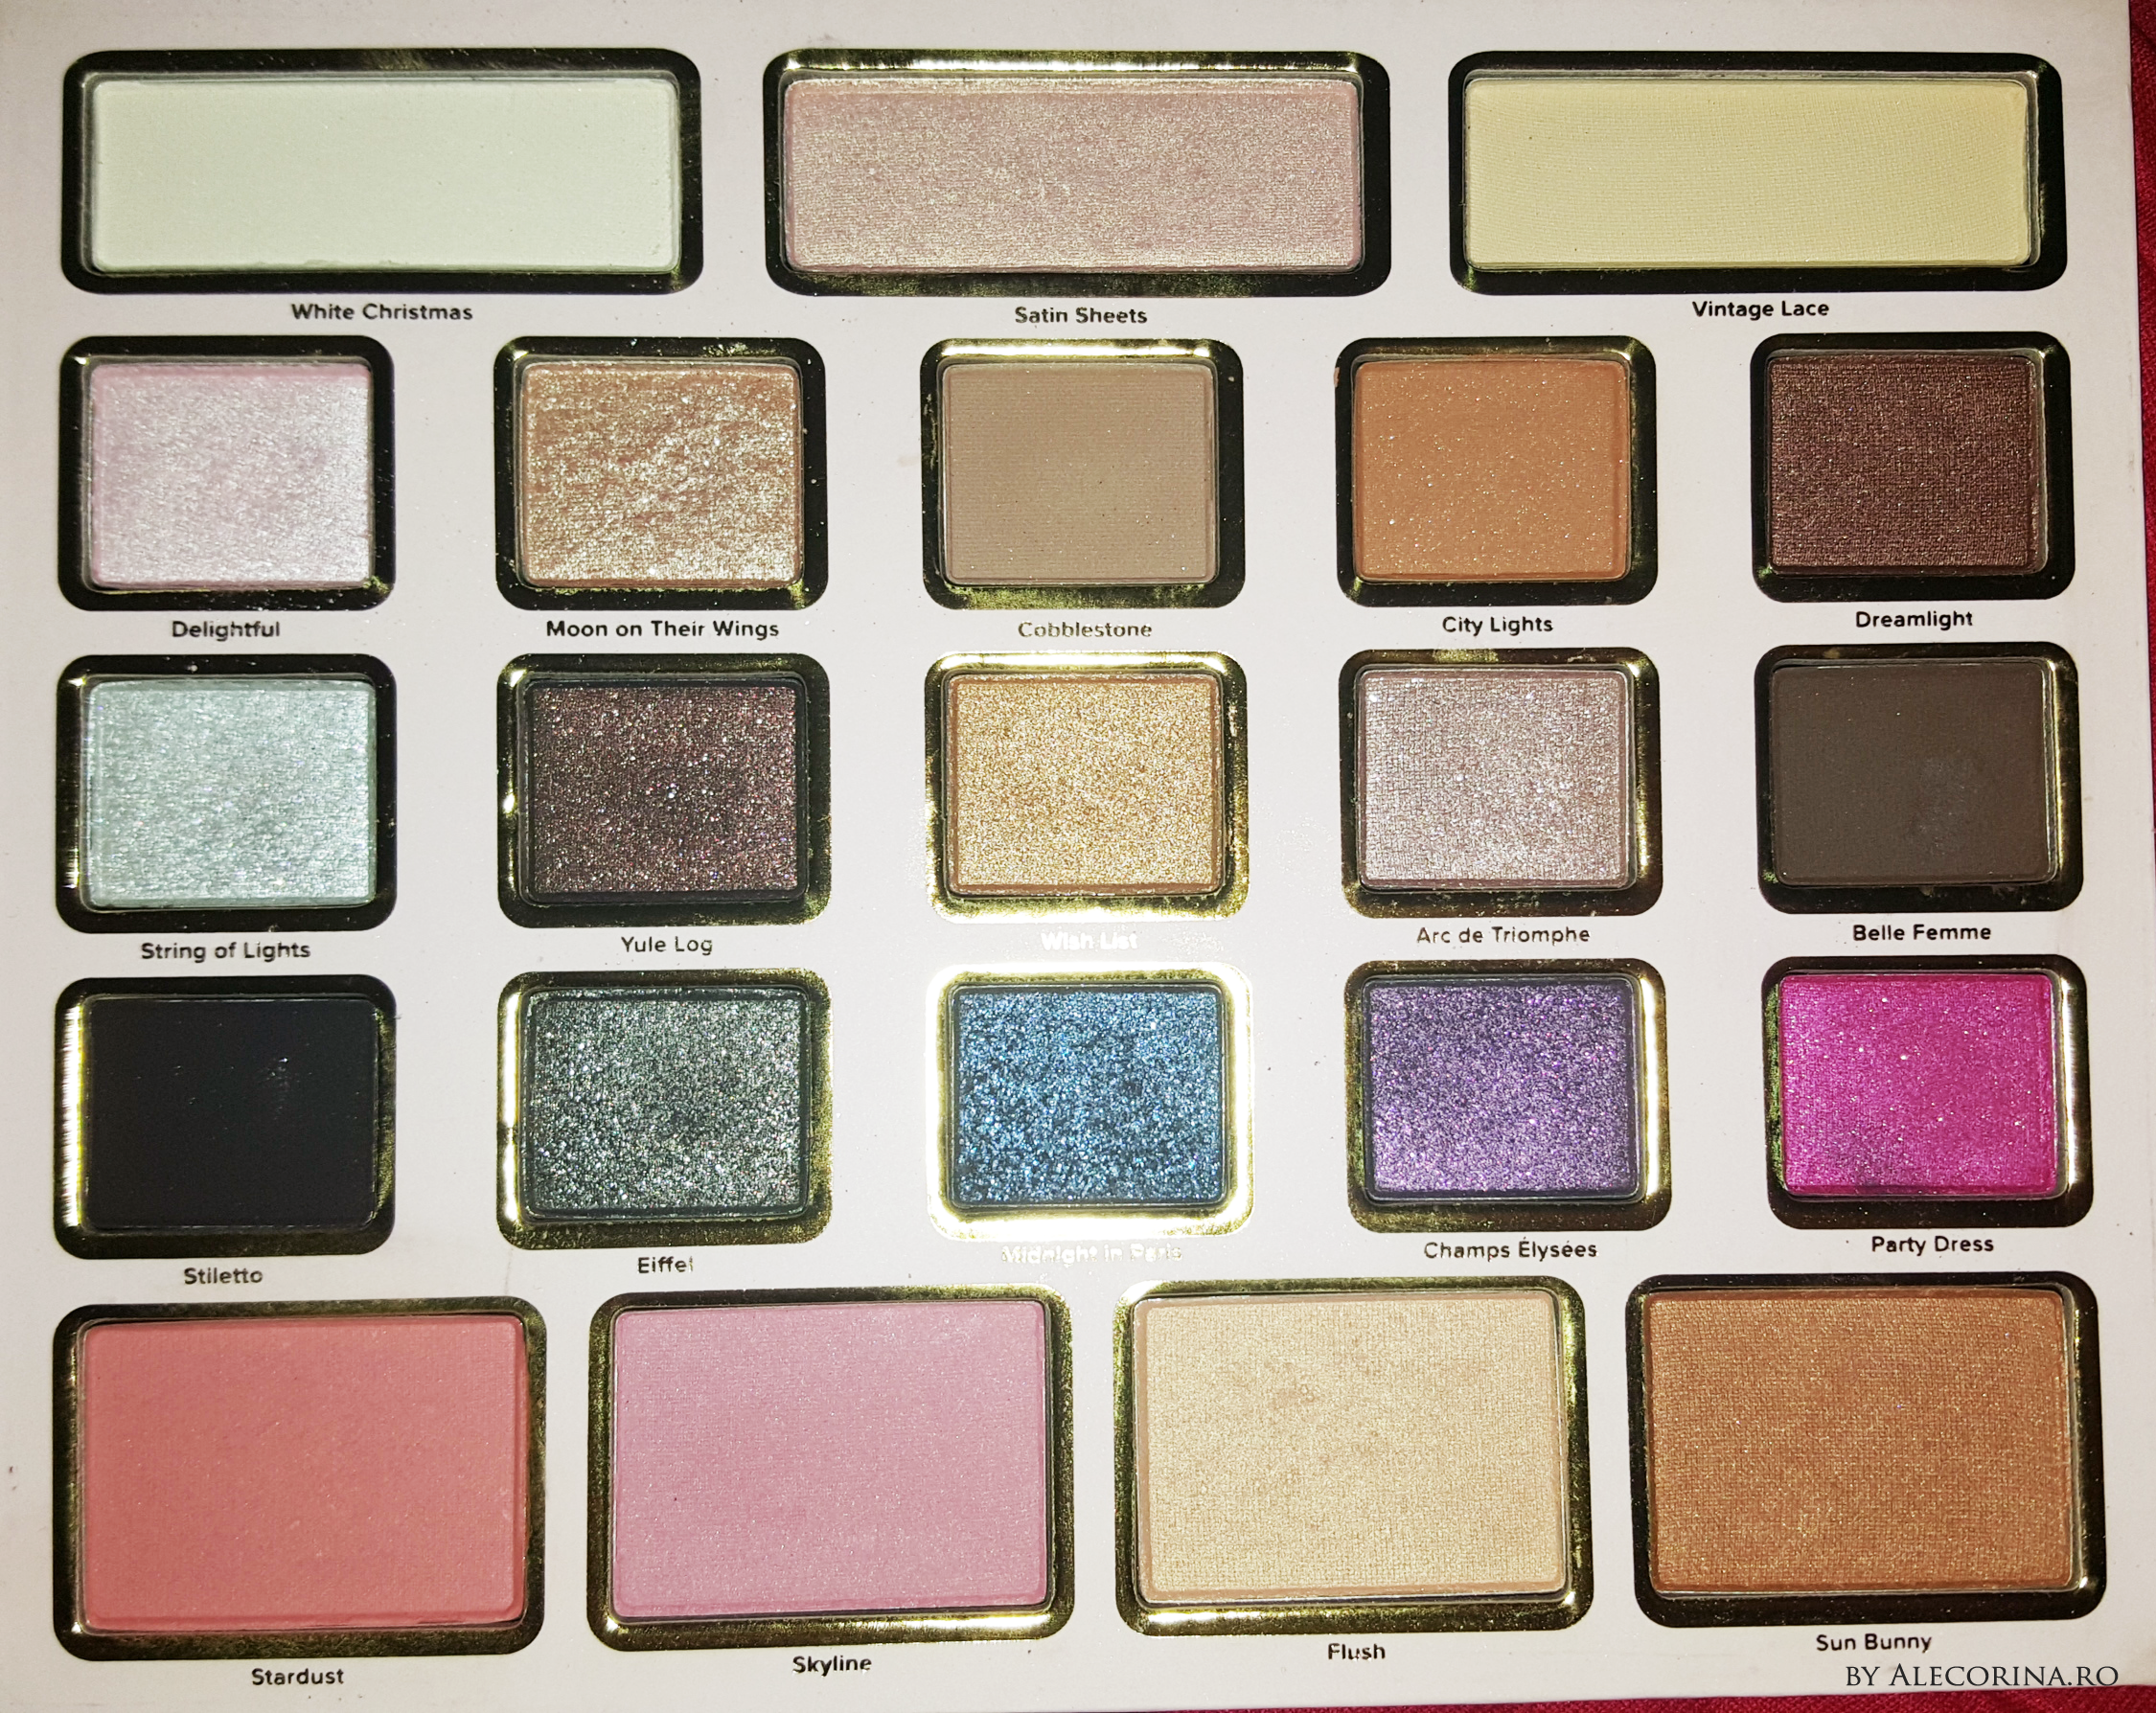 Too Faced Le Grand Palais Make-up Palette